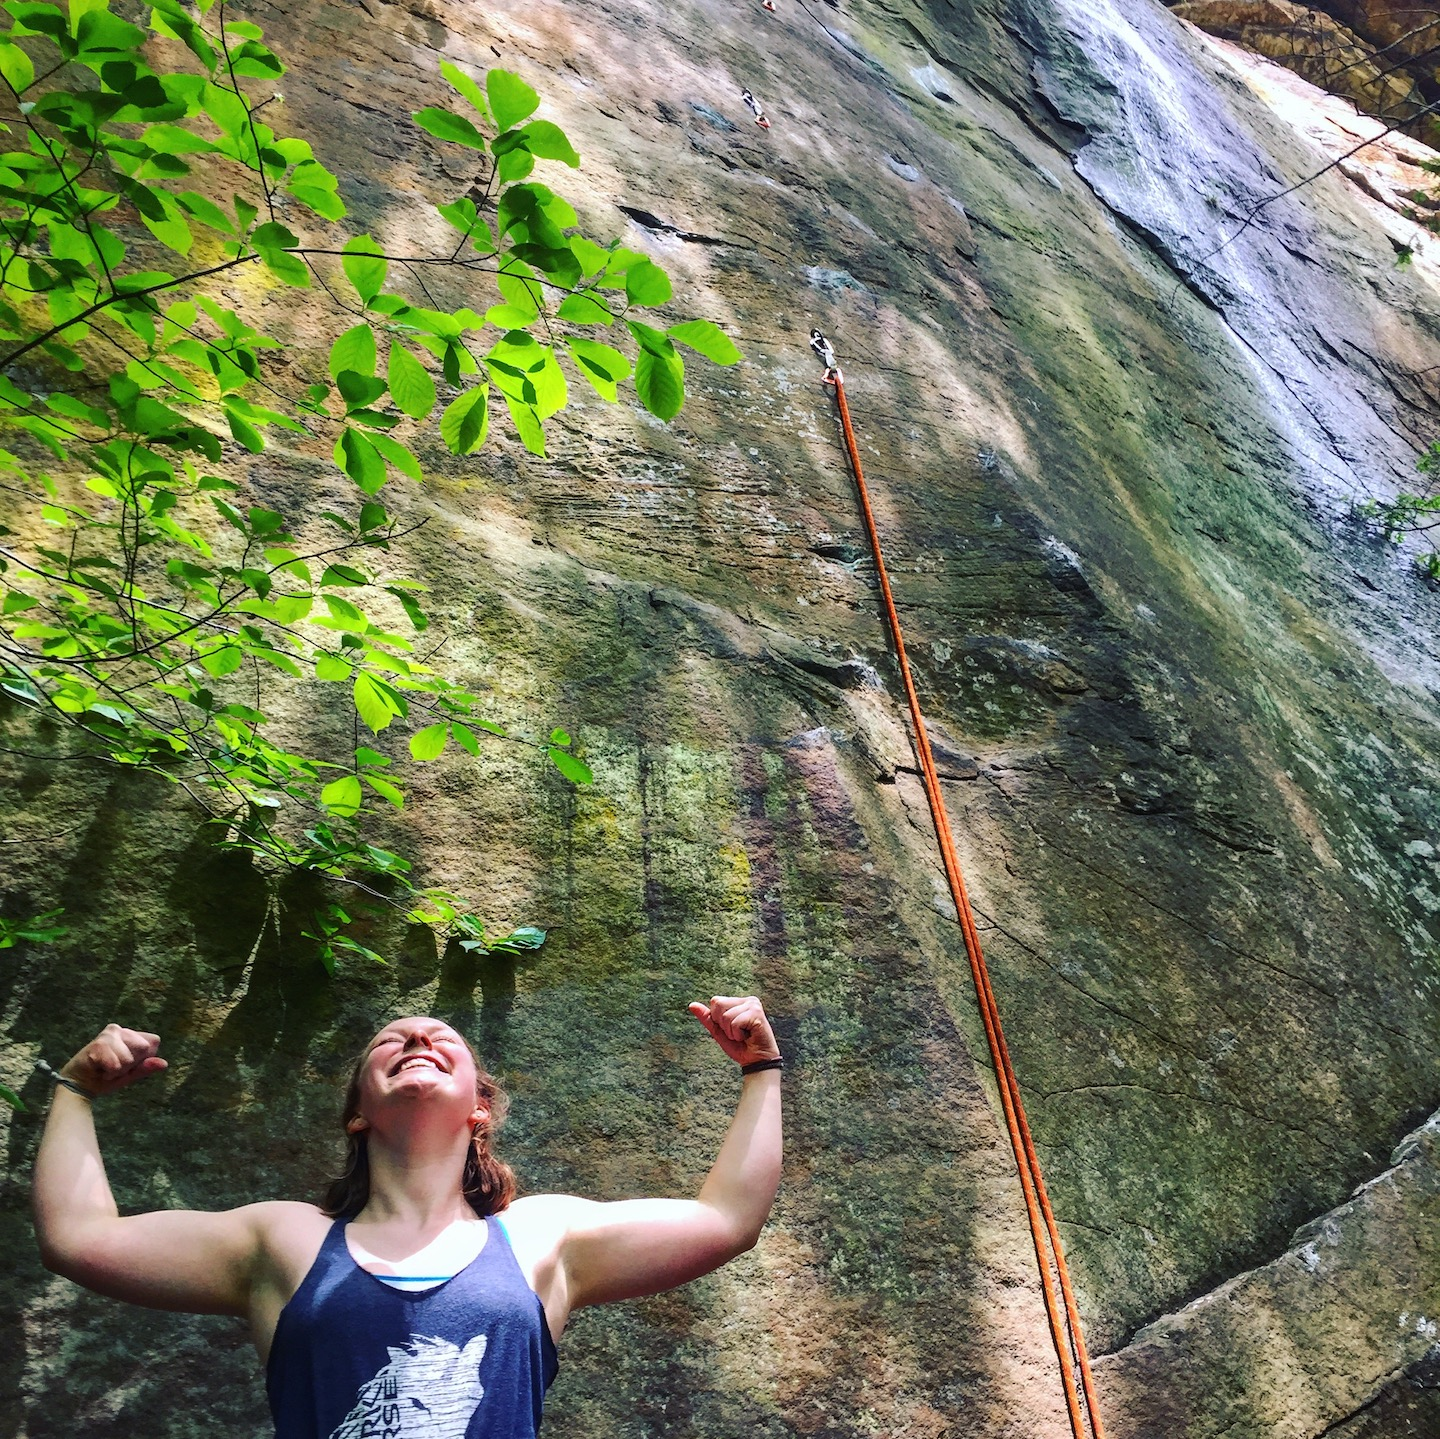 Climbing In The Red River Gorge: A Story Of Three